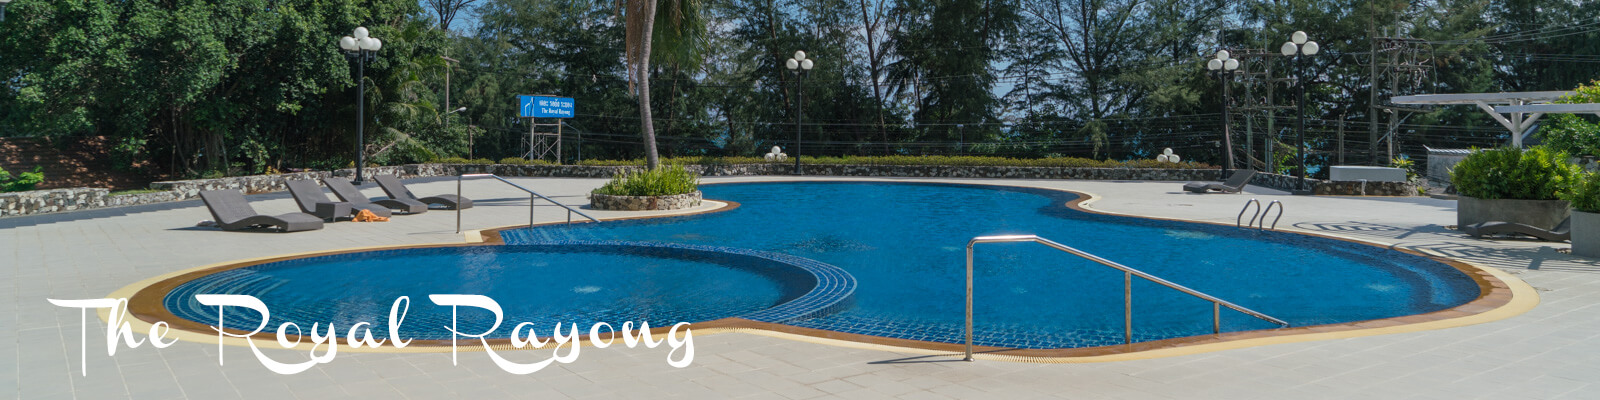 The Royal Rayong Condo has a large and well-maintained pool